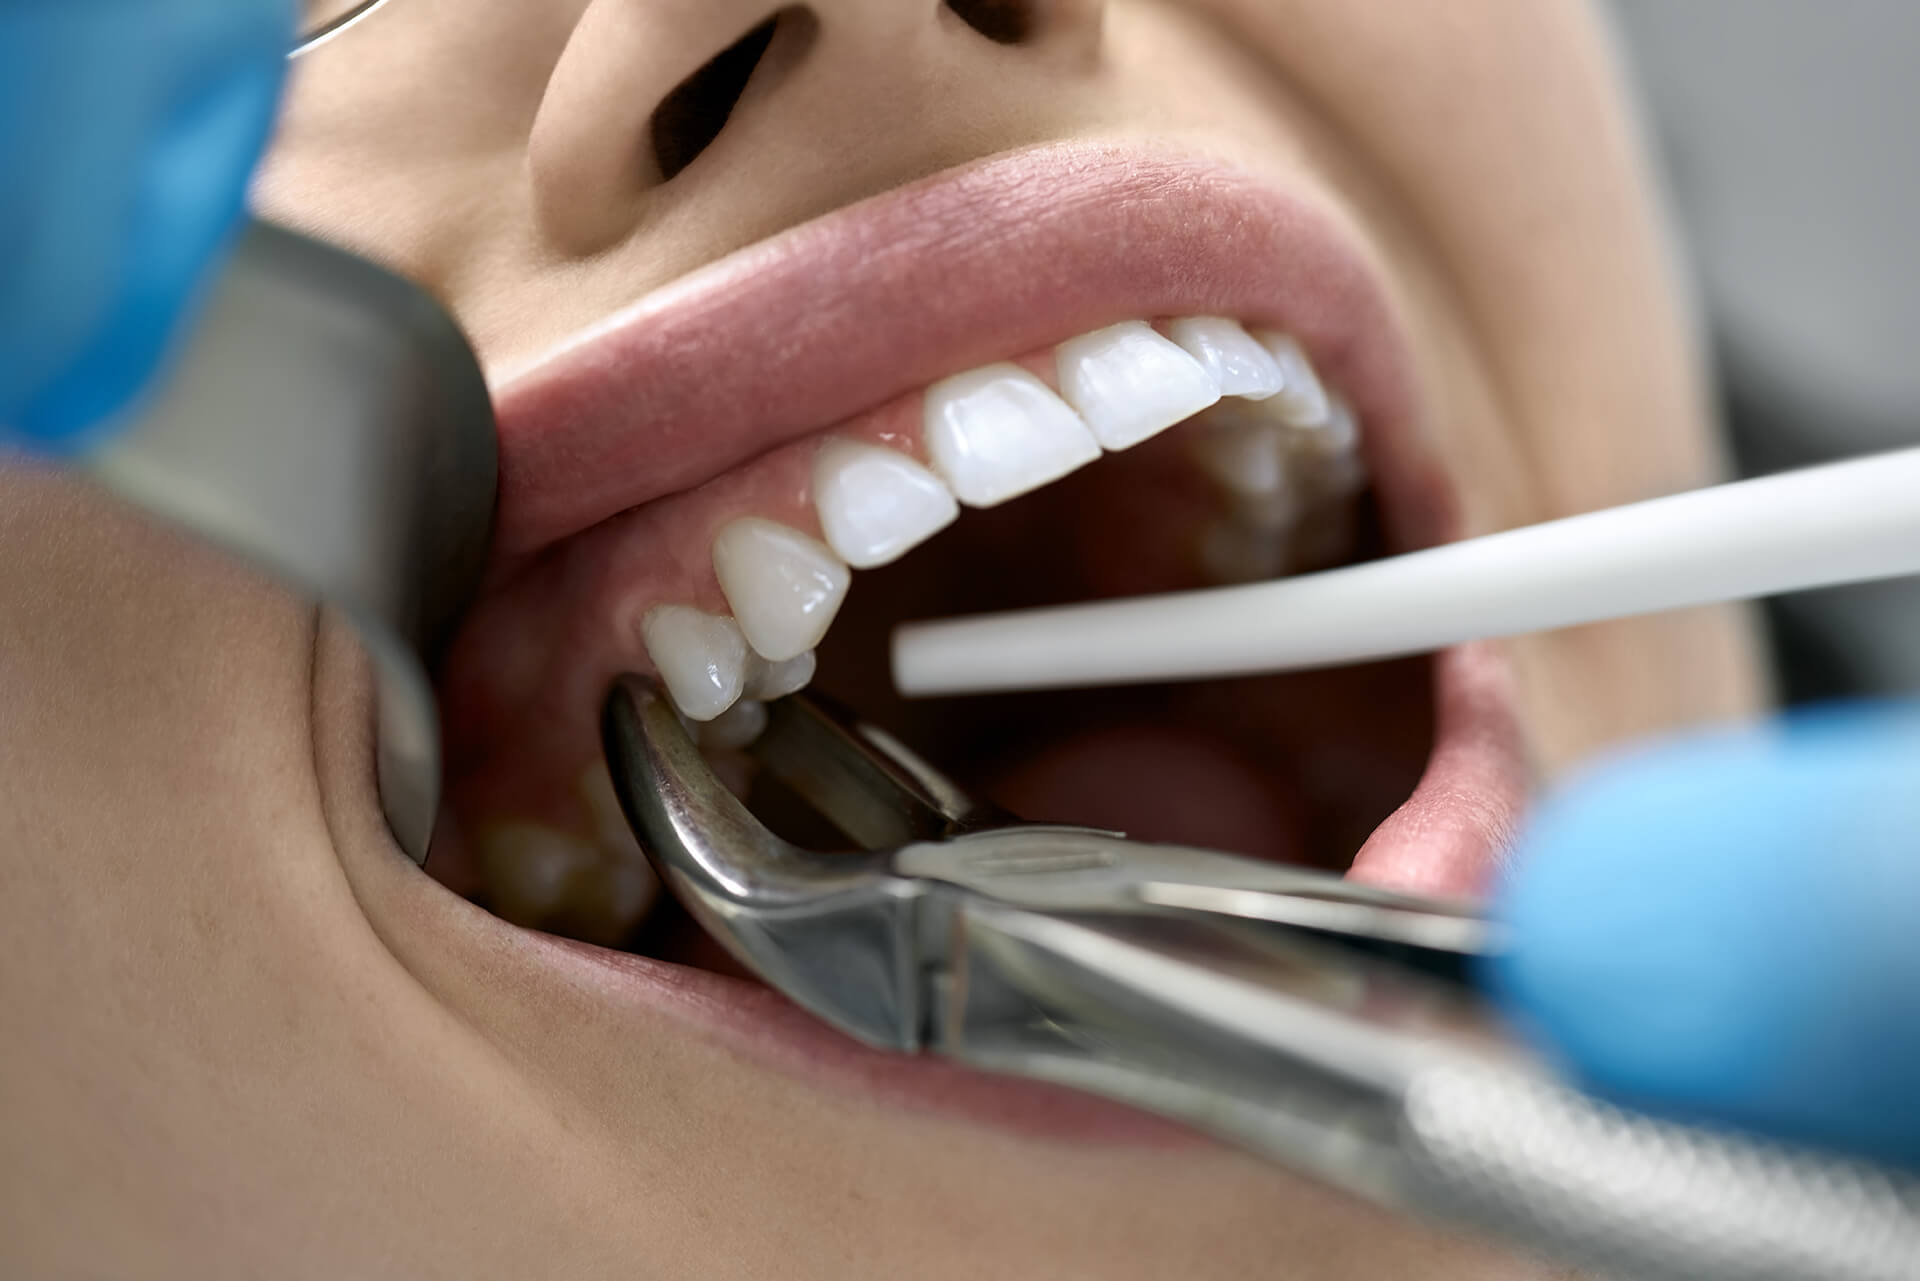 How Can I Fixed a Chipped Tooth?